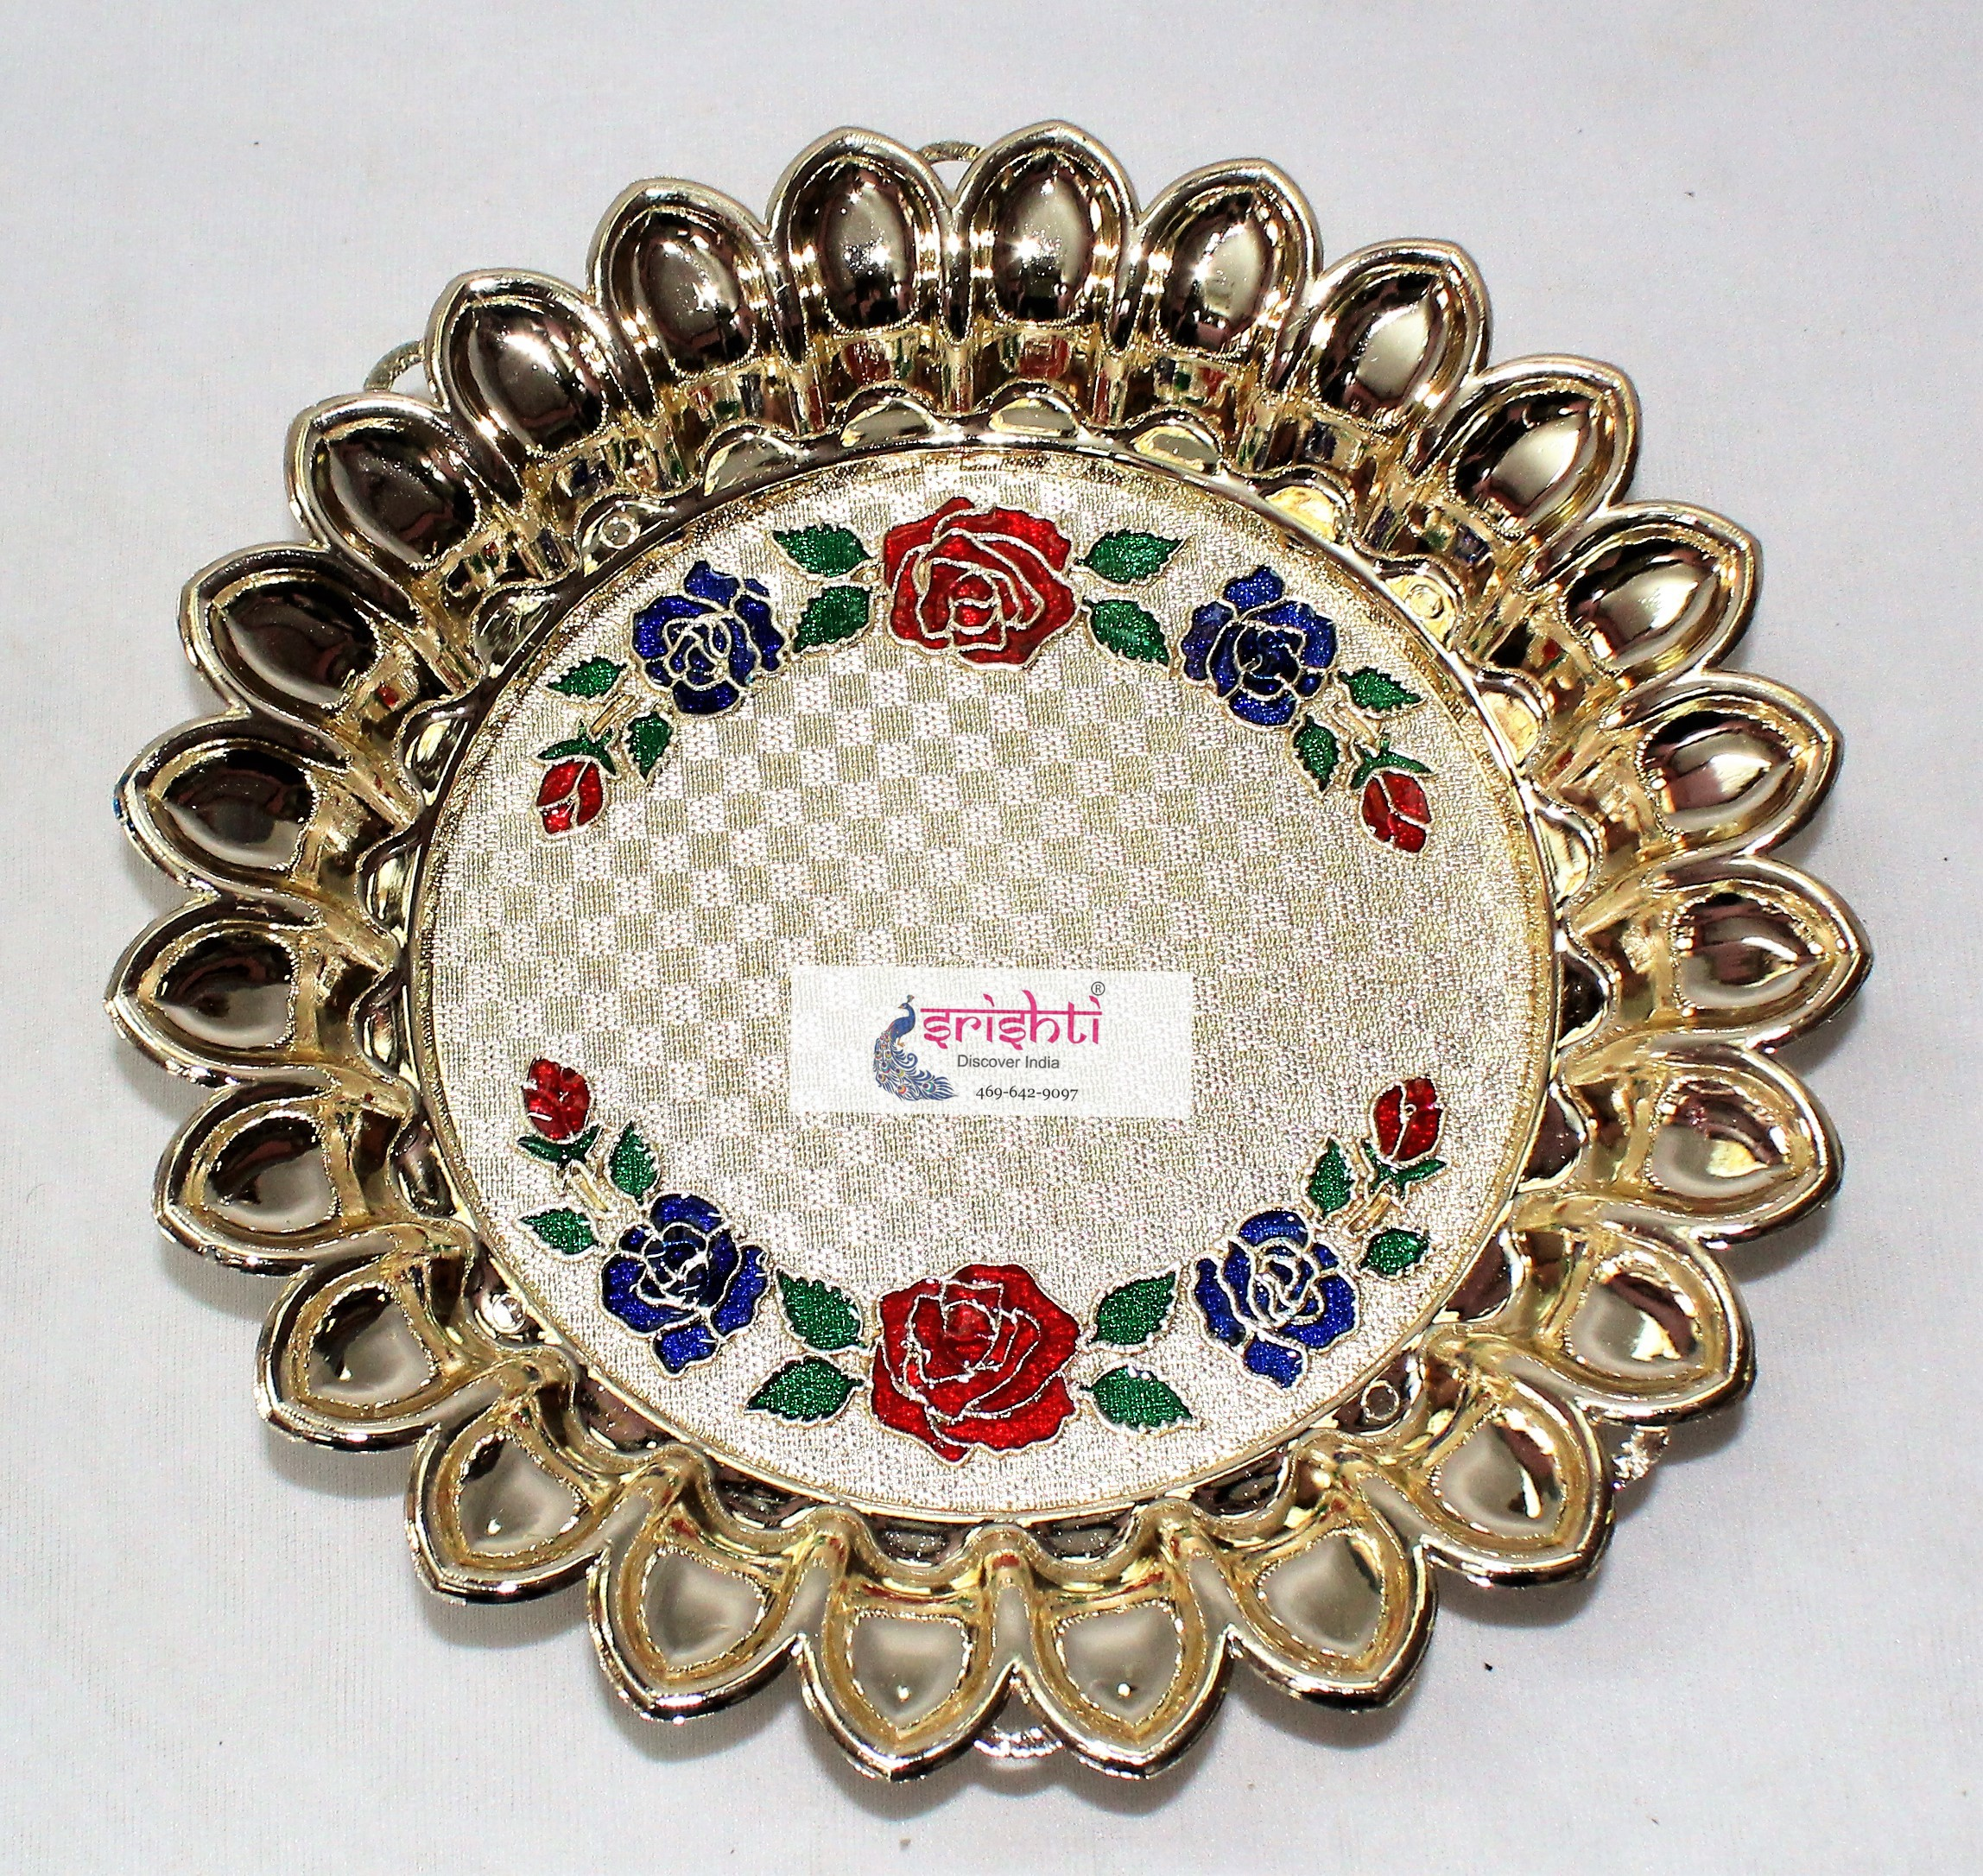 SKRG-Flower Design Thali